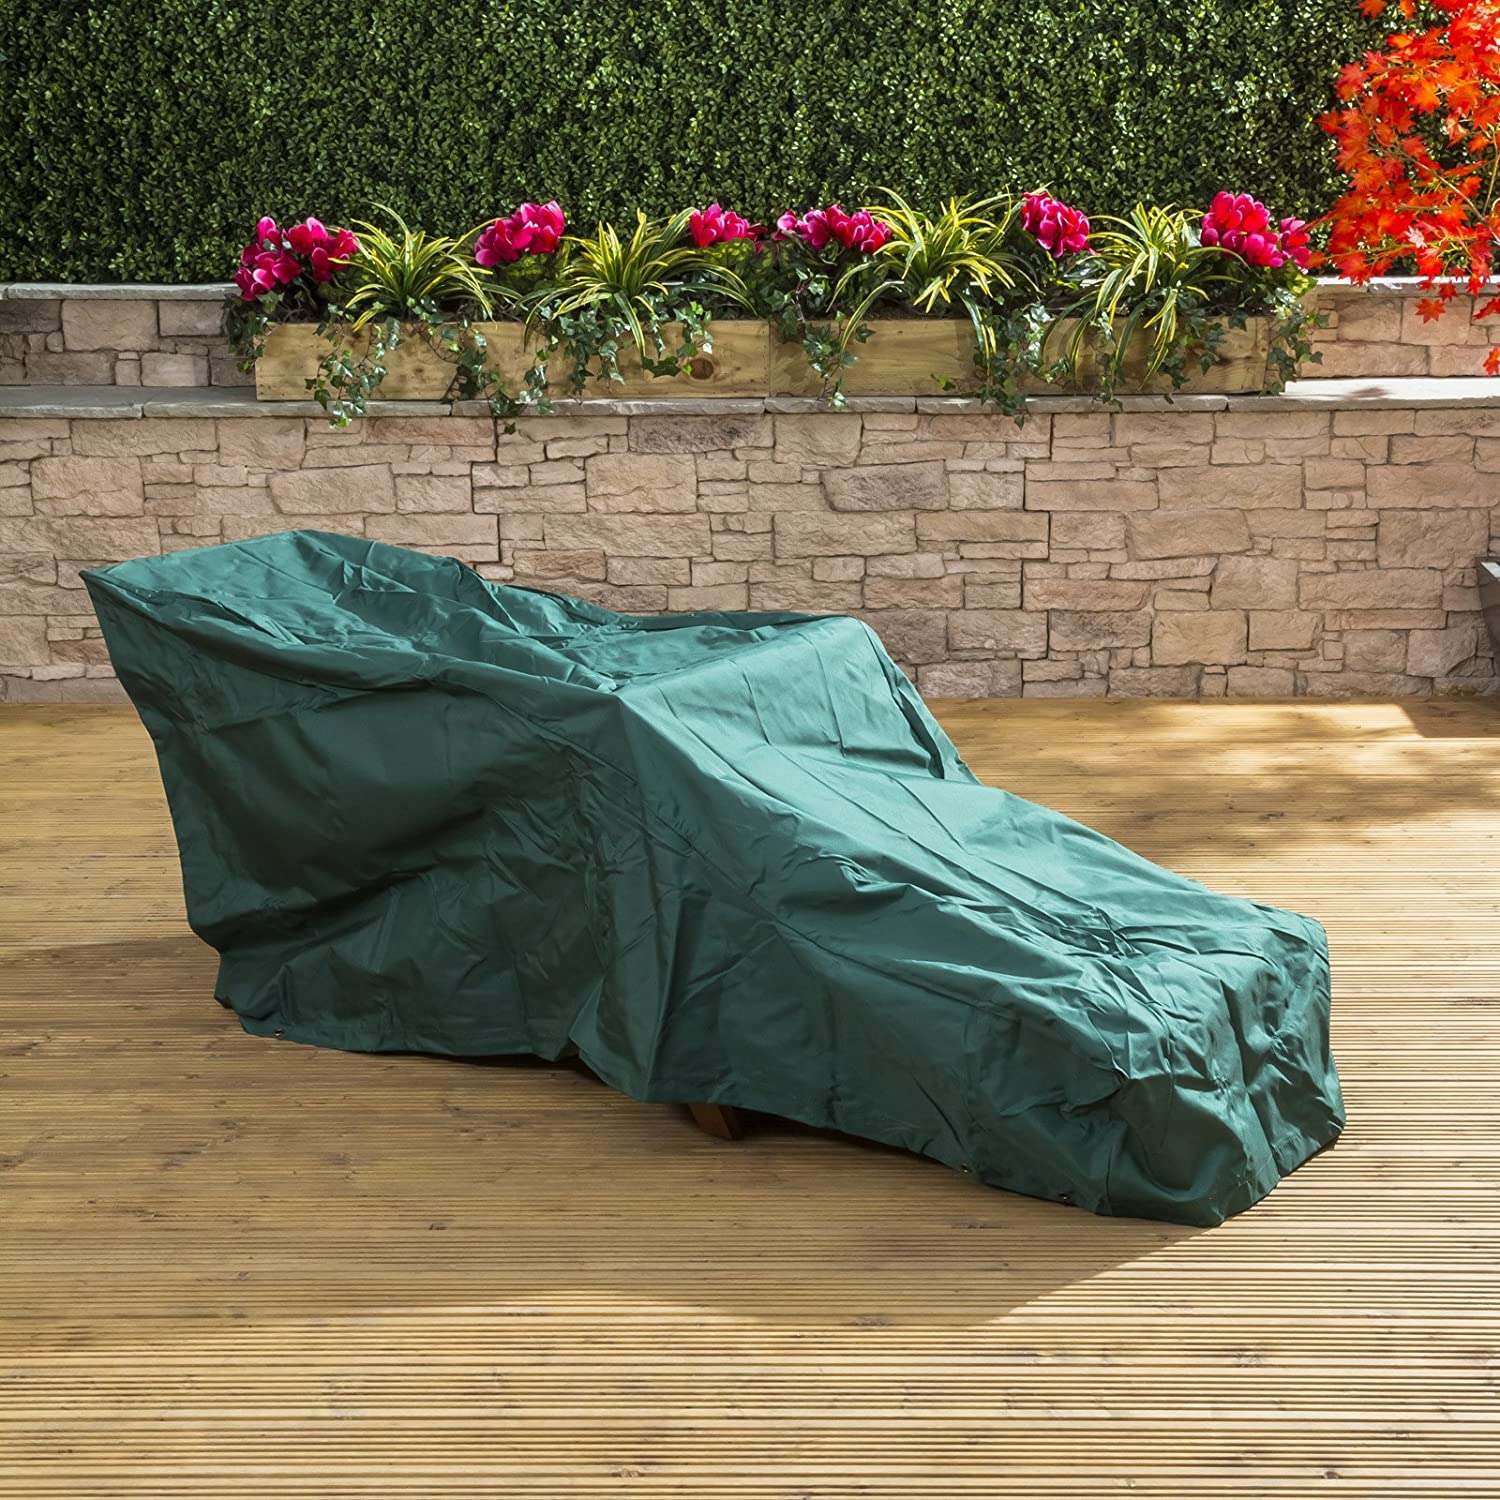 Deluxe Steamer Chair Garden Furniture Cover Alfresia